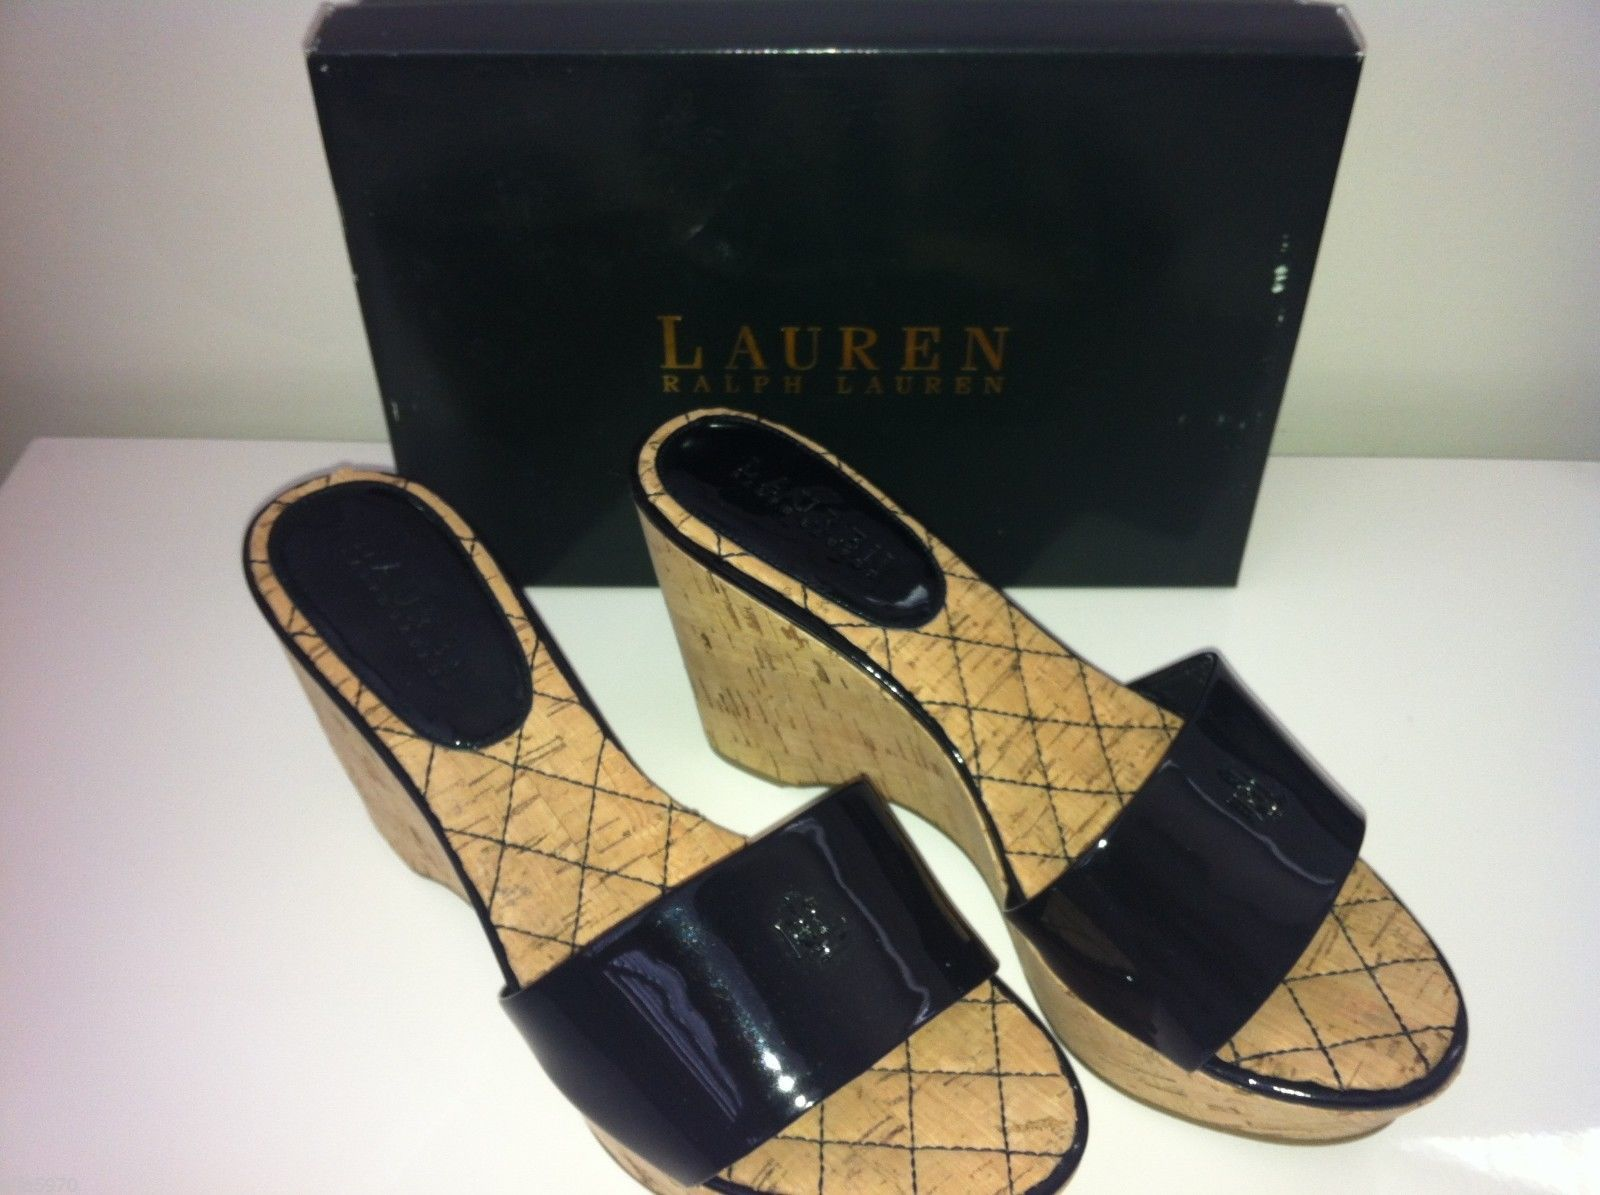 RALPH LAUREN PATENT LEATHER WEDGE SANDALS SHOES - 8.5M -NWB